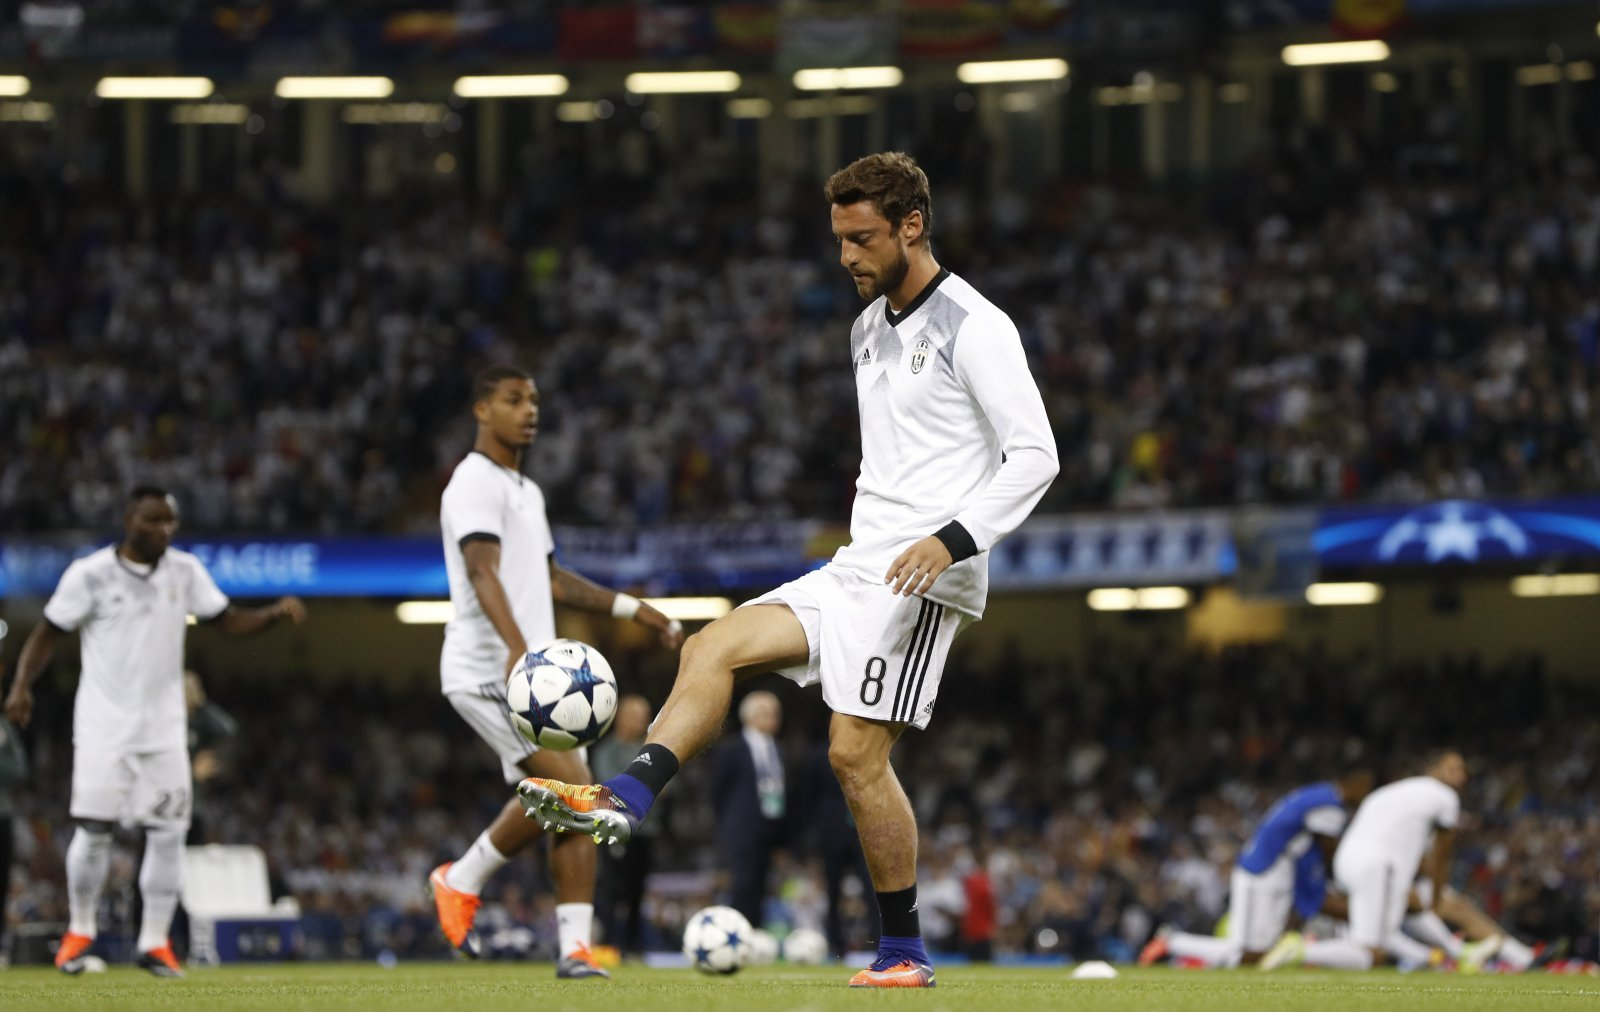 Claudio Marchisio could be a welcome squad addition for Liverpool as Klopp chases cups